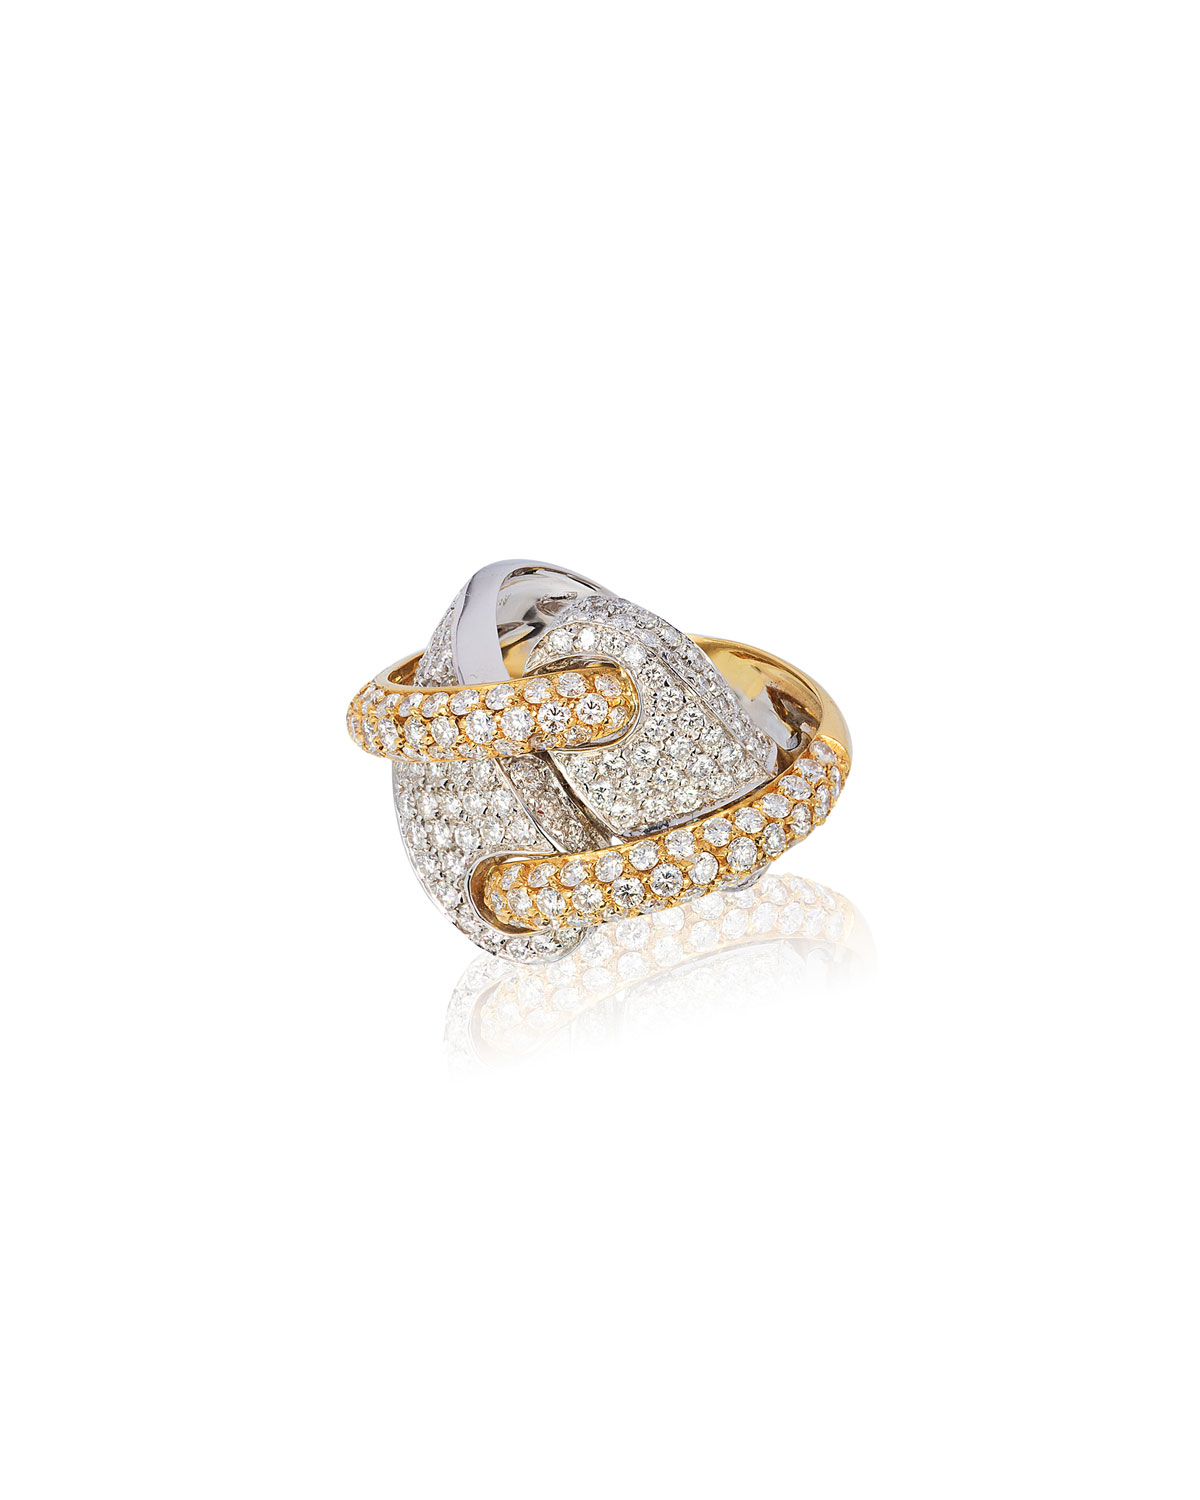 Andreoli 18k 2-Tone Gold Diamond Ring, Size 7.75